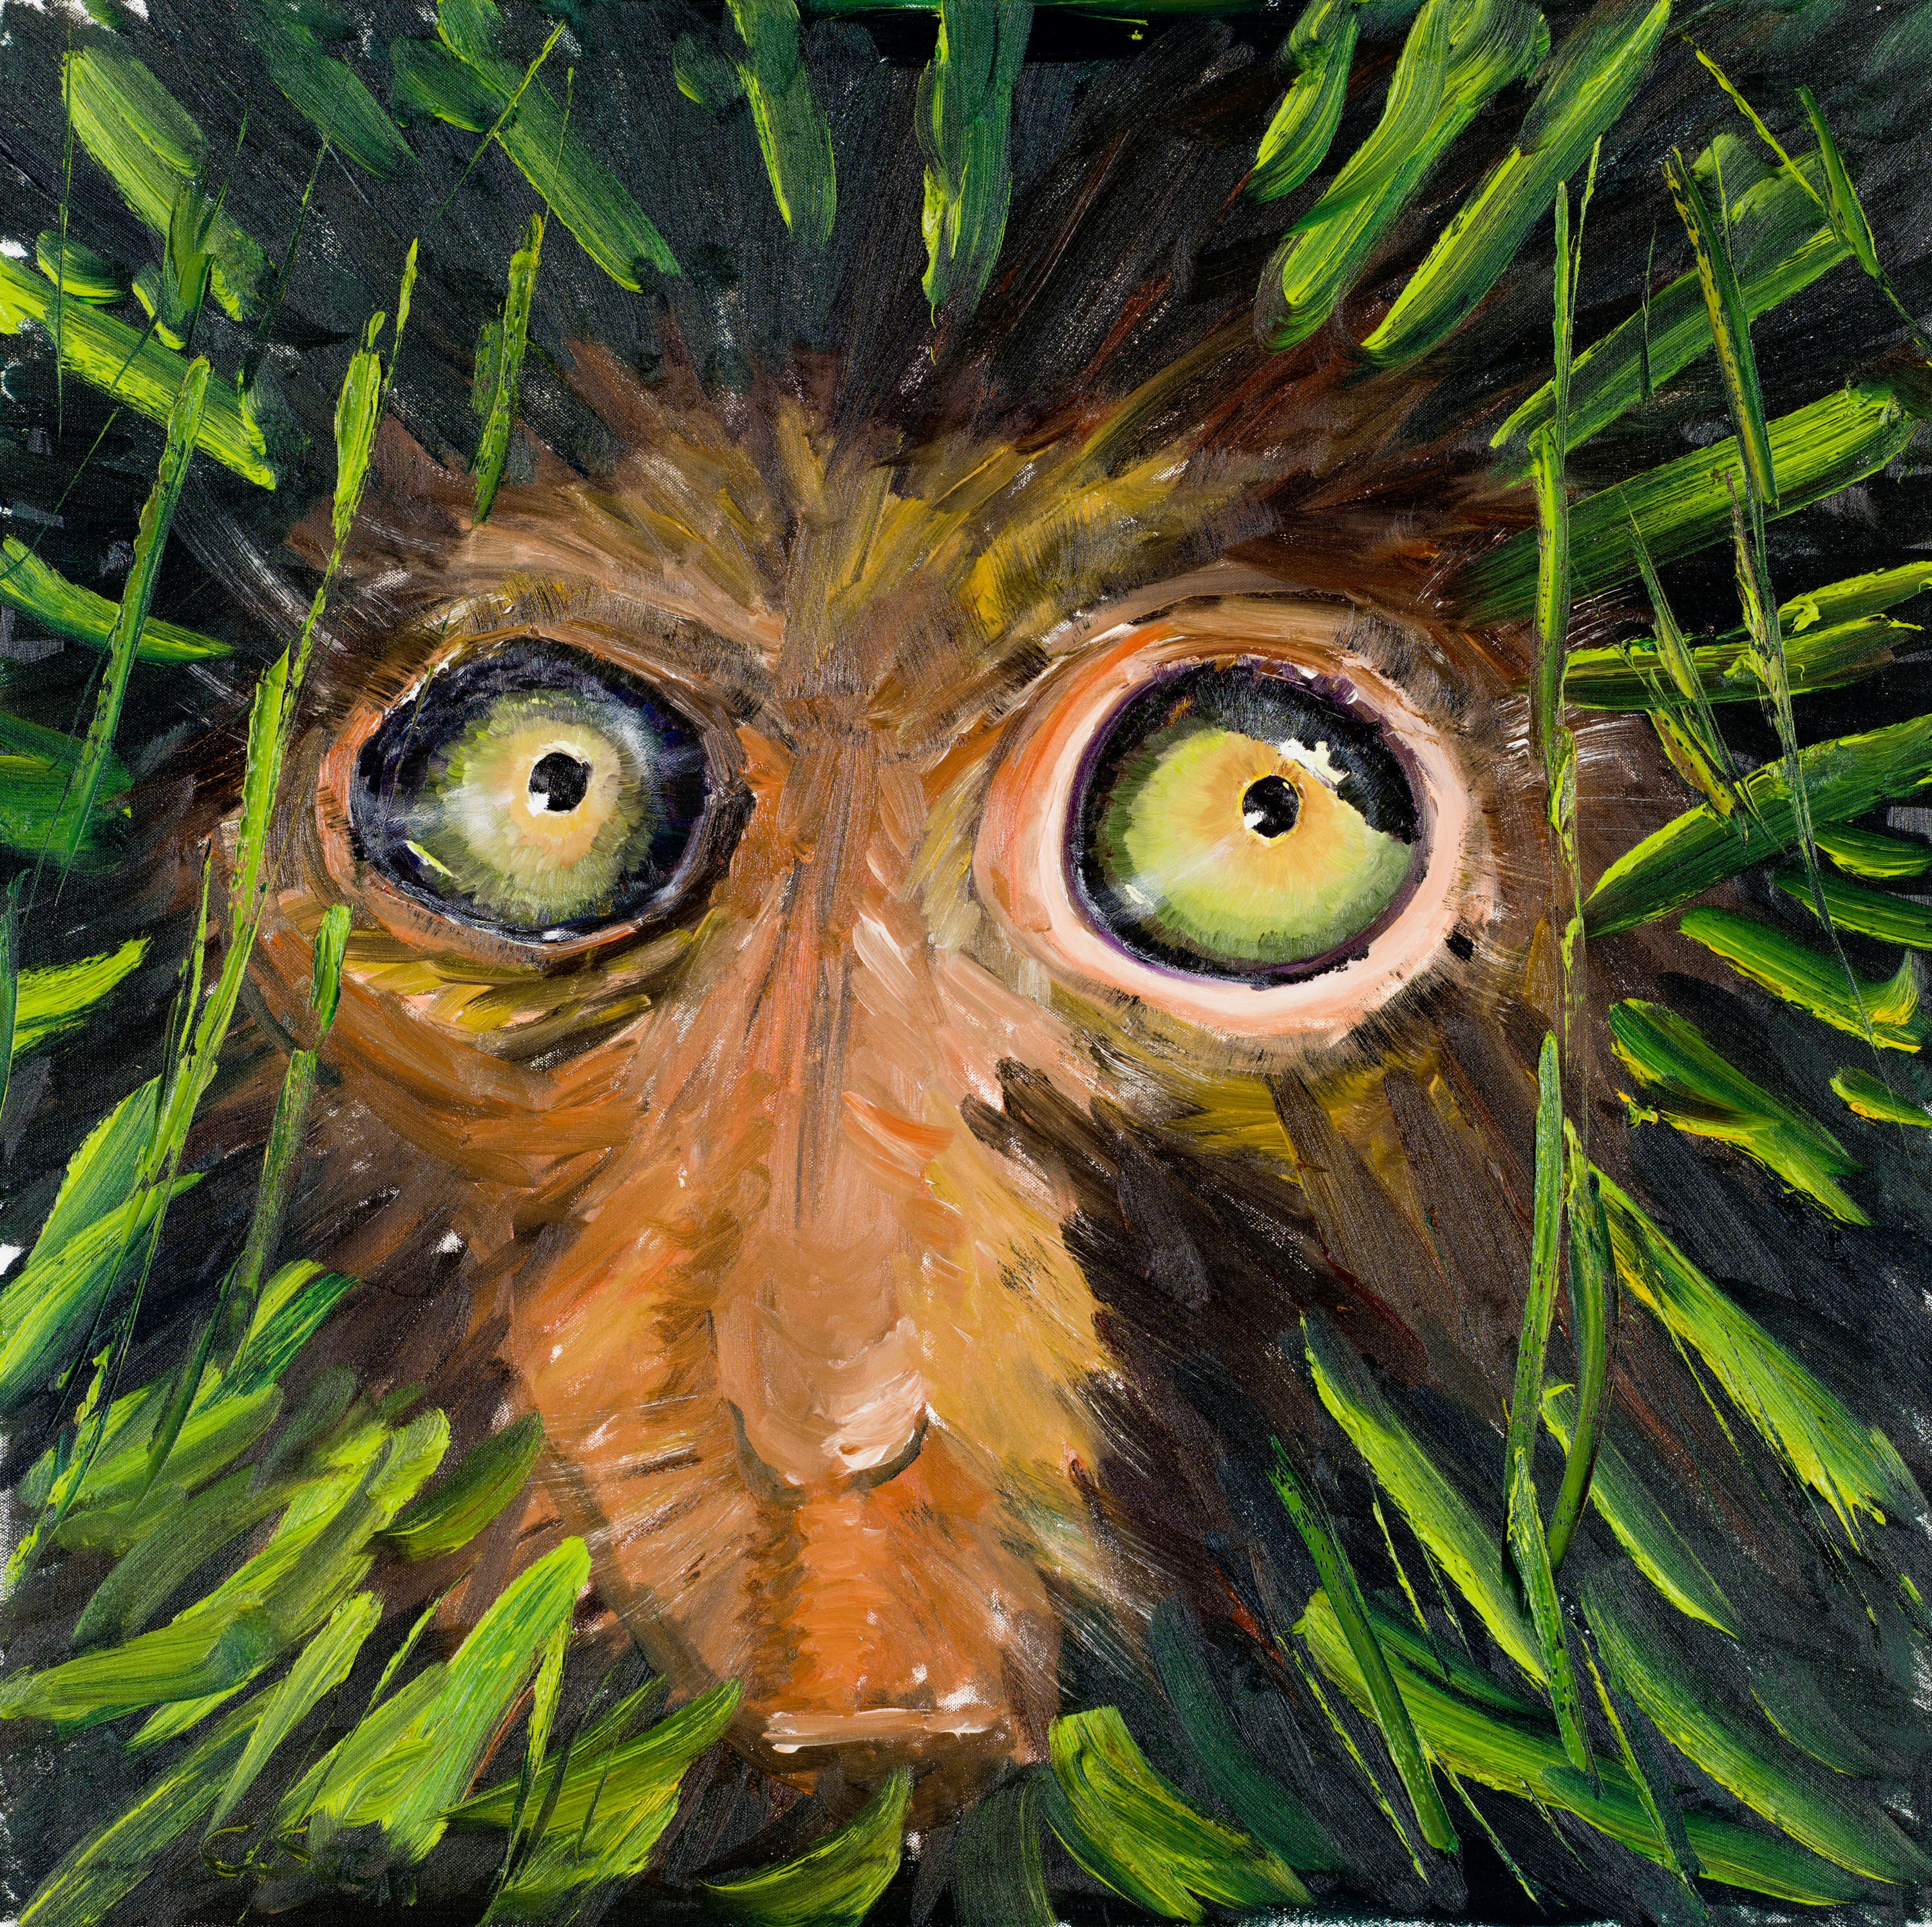 Threatened habitat oil painting